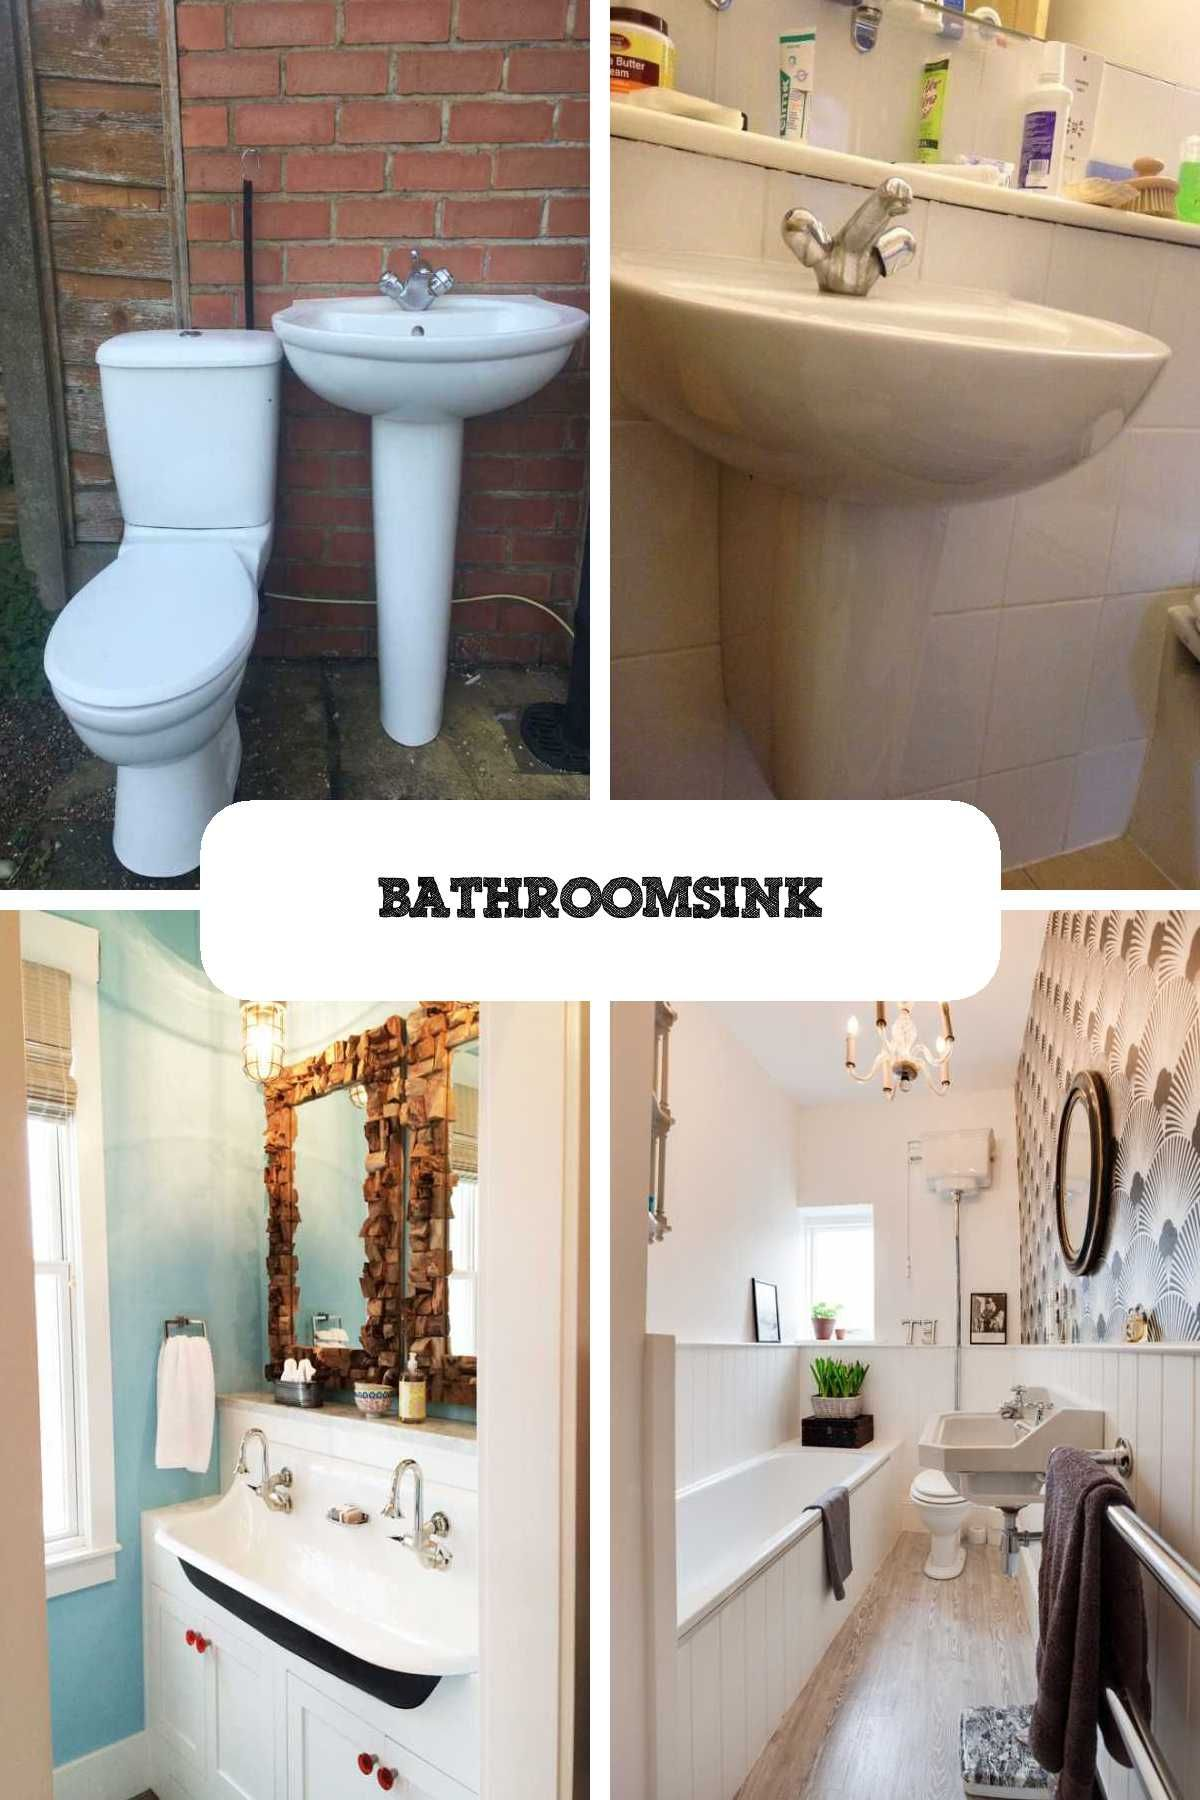 Photo of bathroomsink